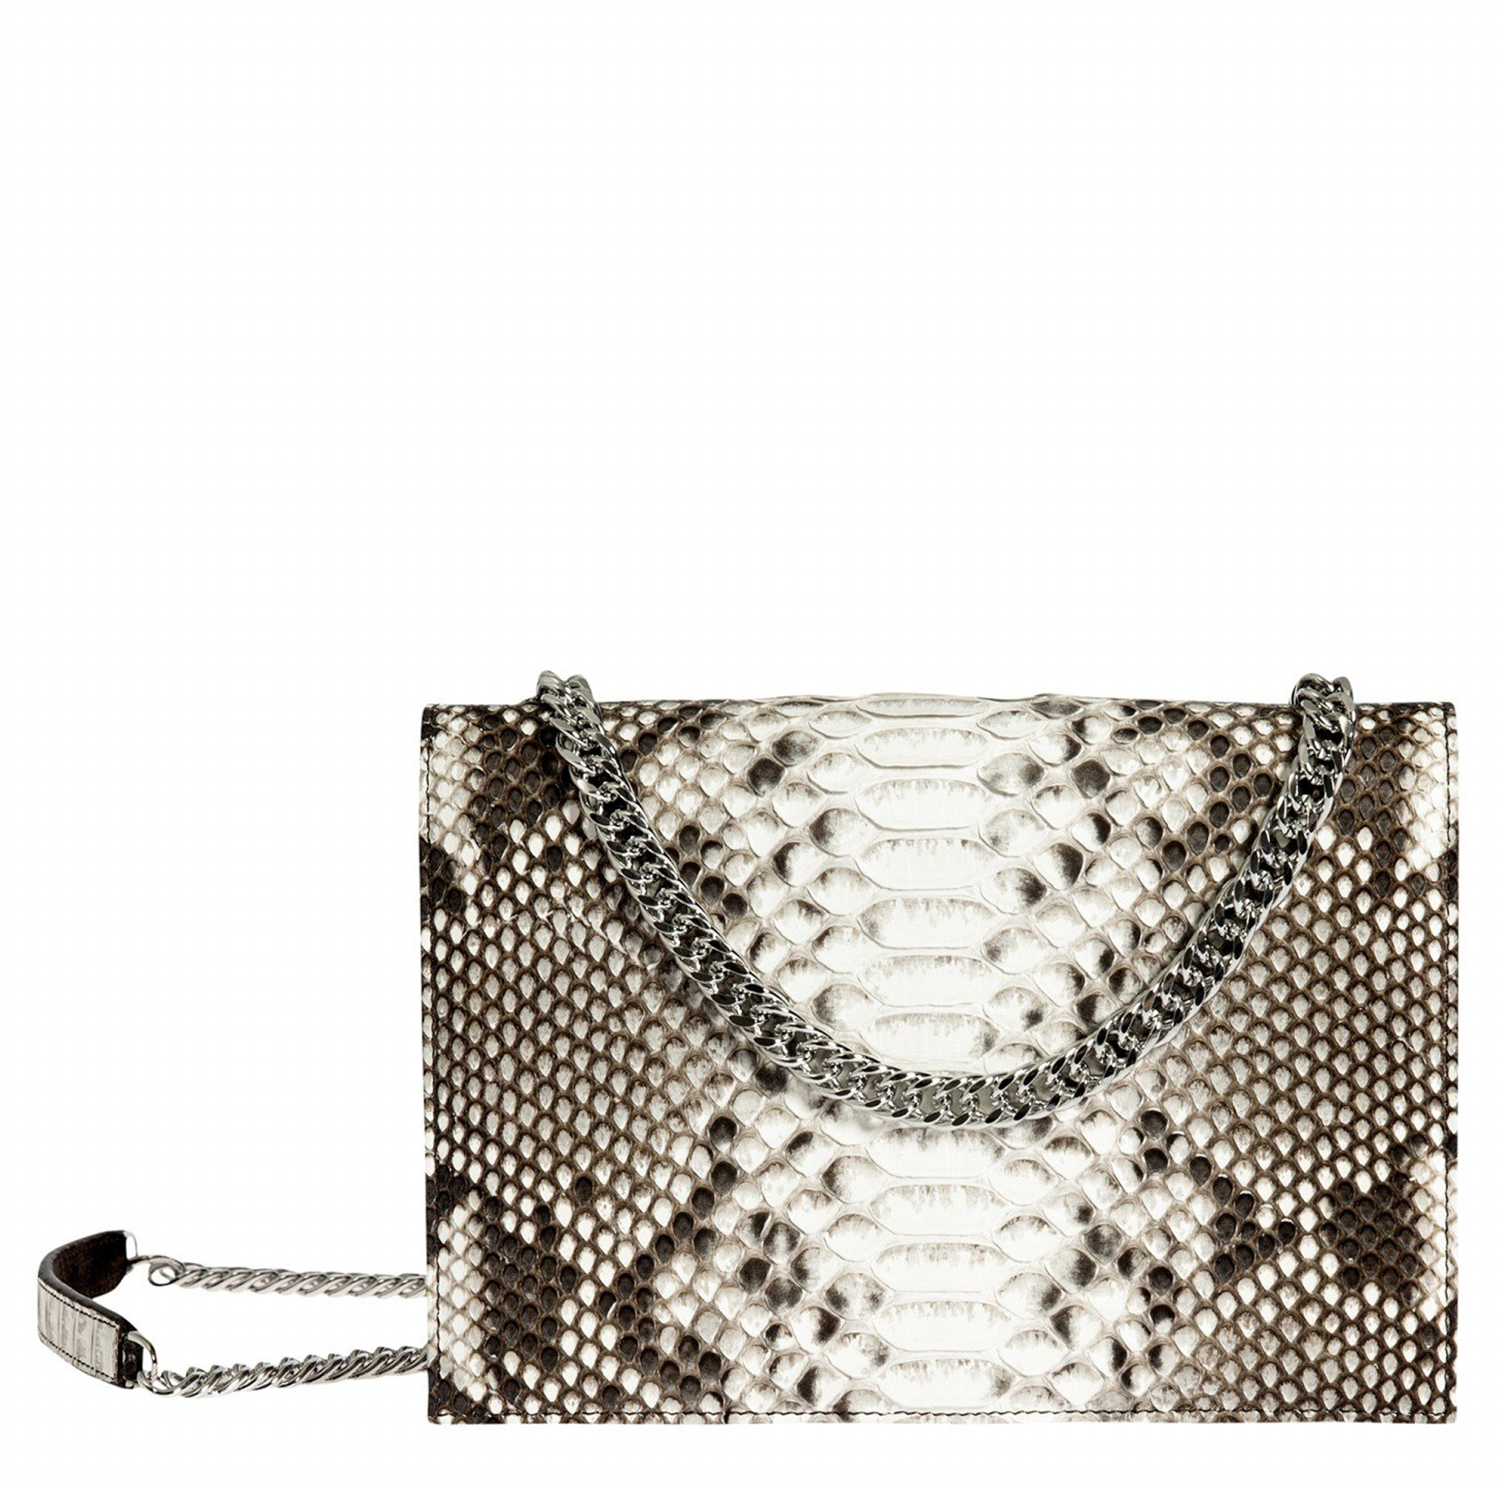 EVA SMALL SHOULDER BAG IN PYTHON